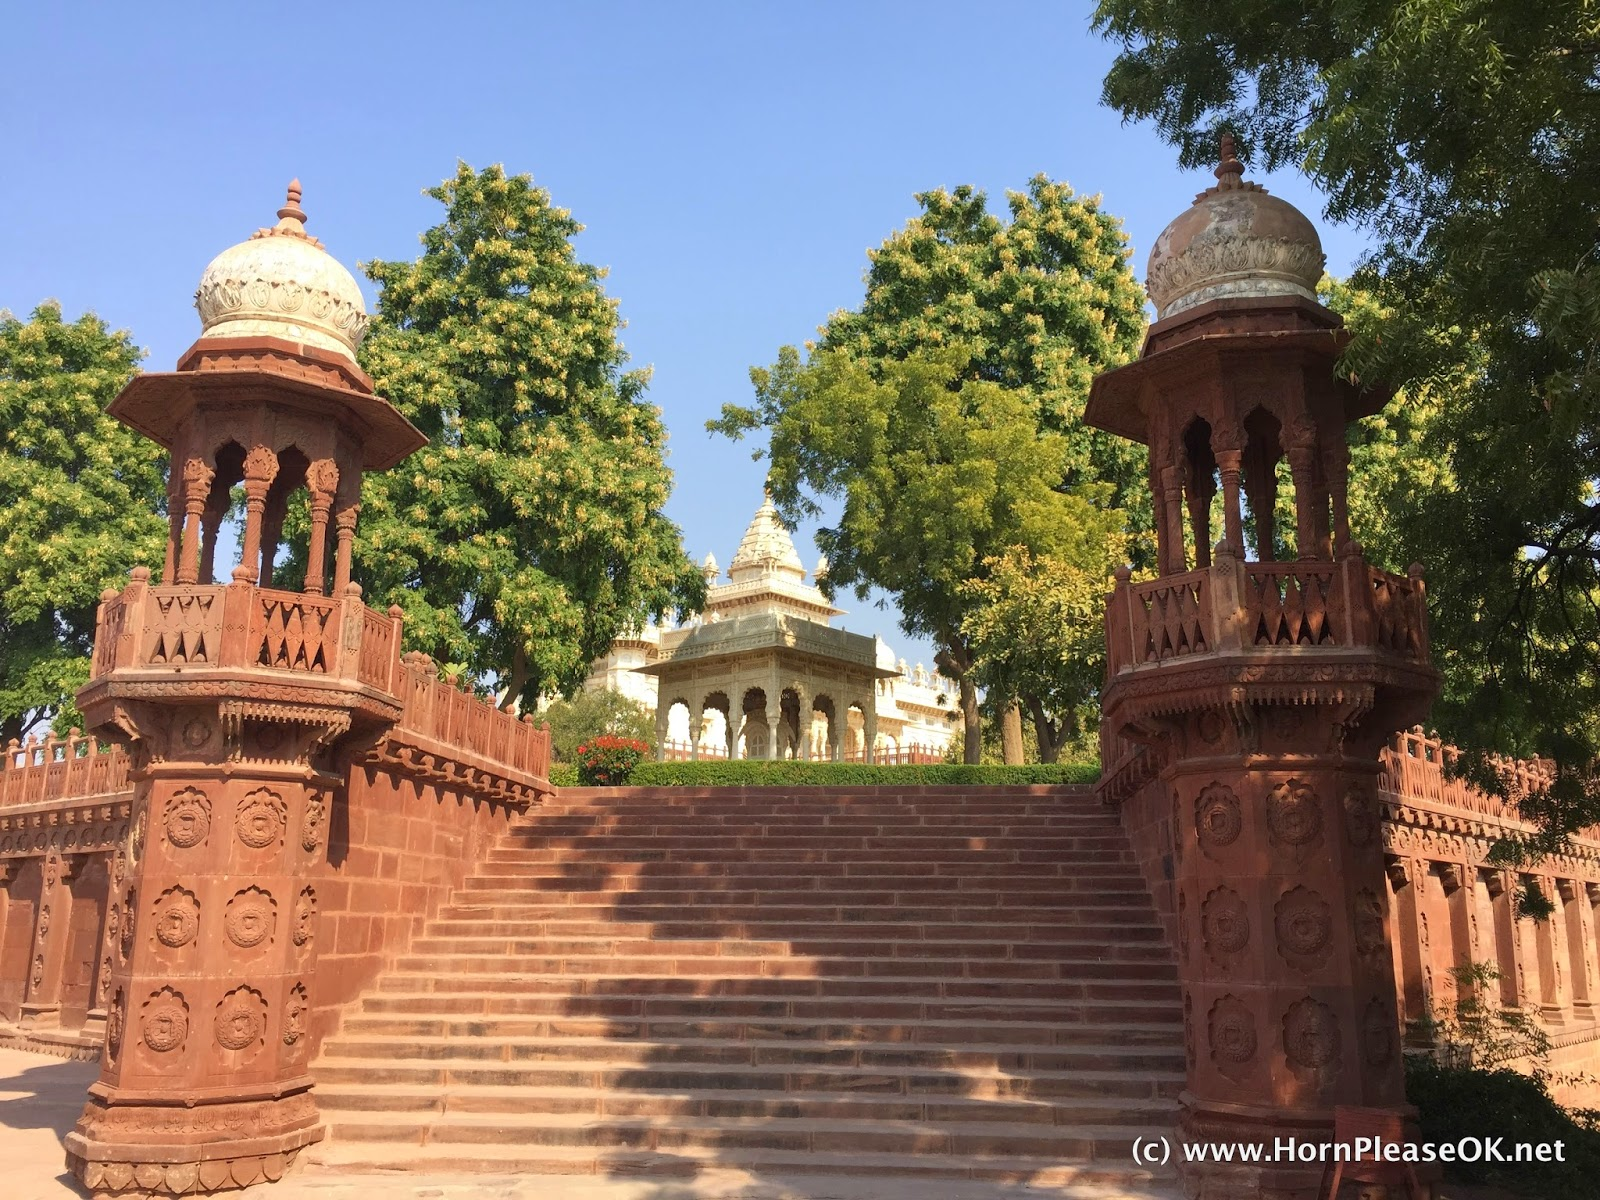 The entrance to Jaswant Thada